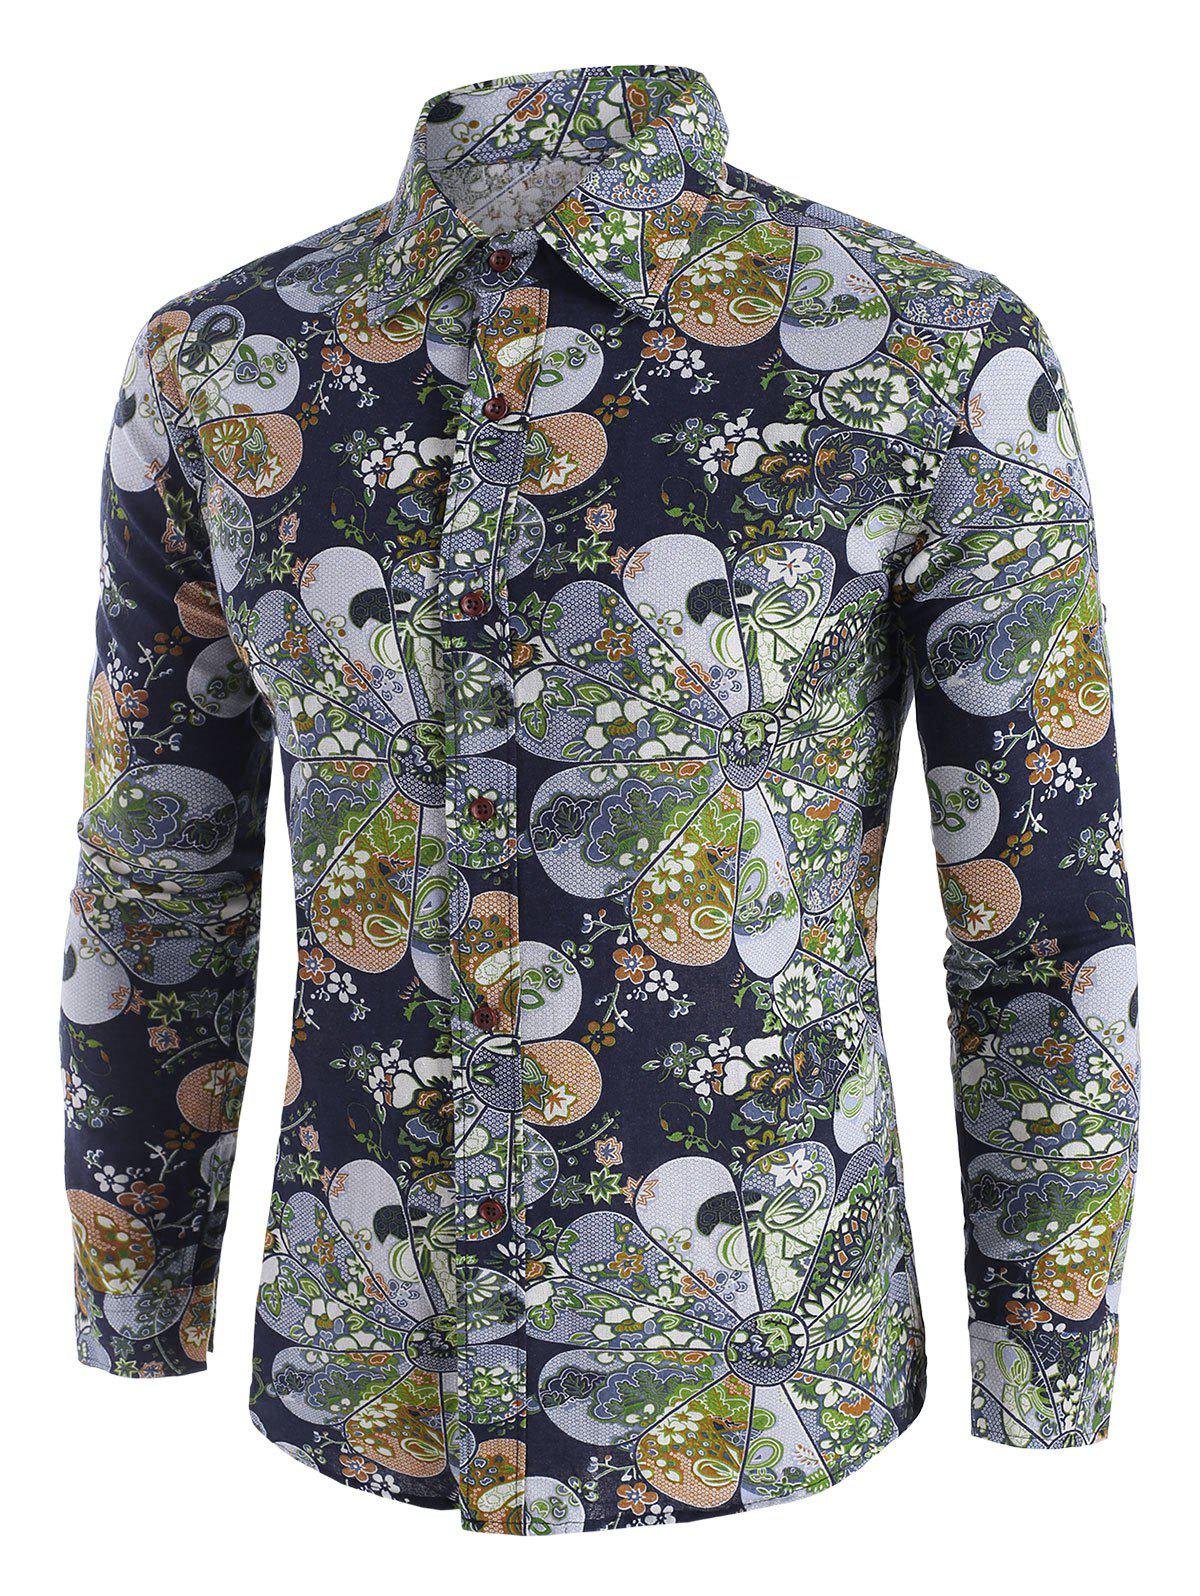 Ditsy Floral Pattern Long Sleeve Casual Shirt - multicolor XS